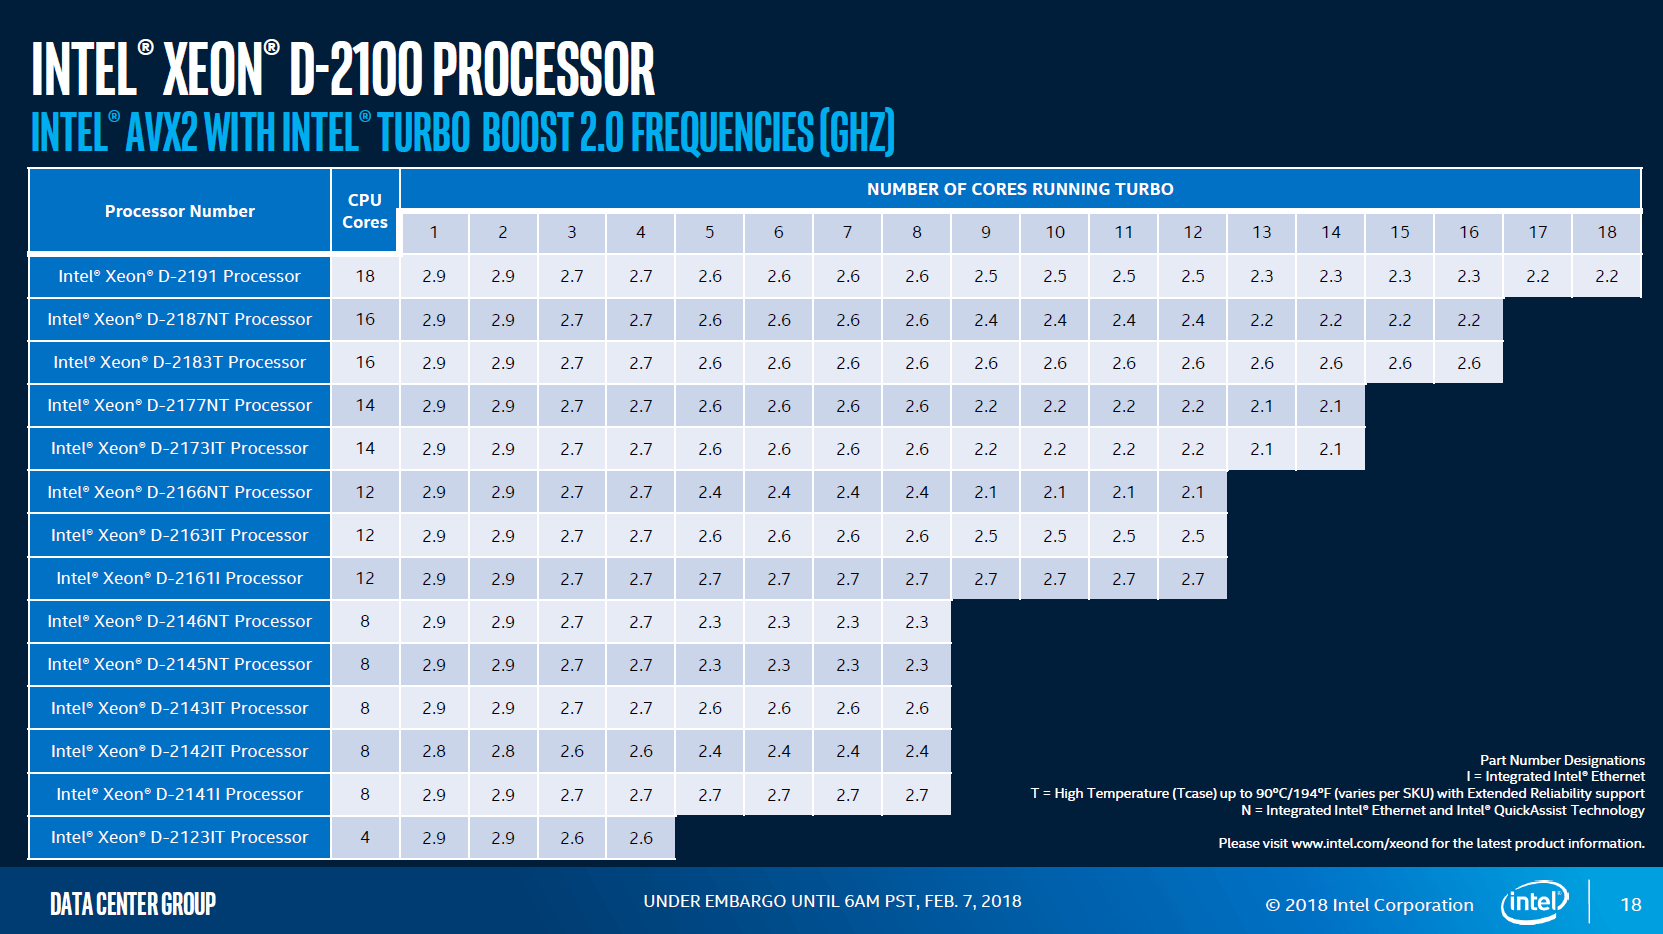 Intel Xeon D-2100 Taktraten mit Turbo bei AVX2